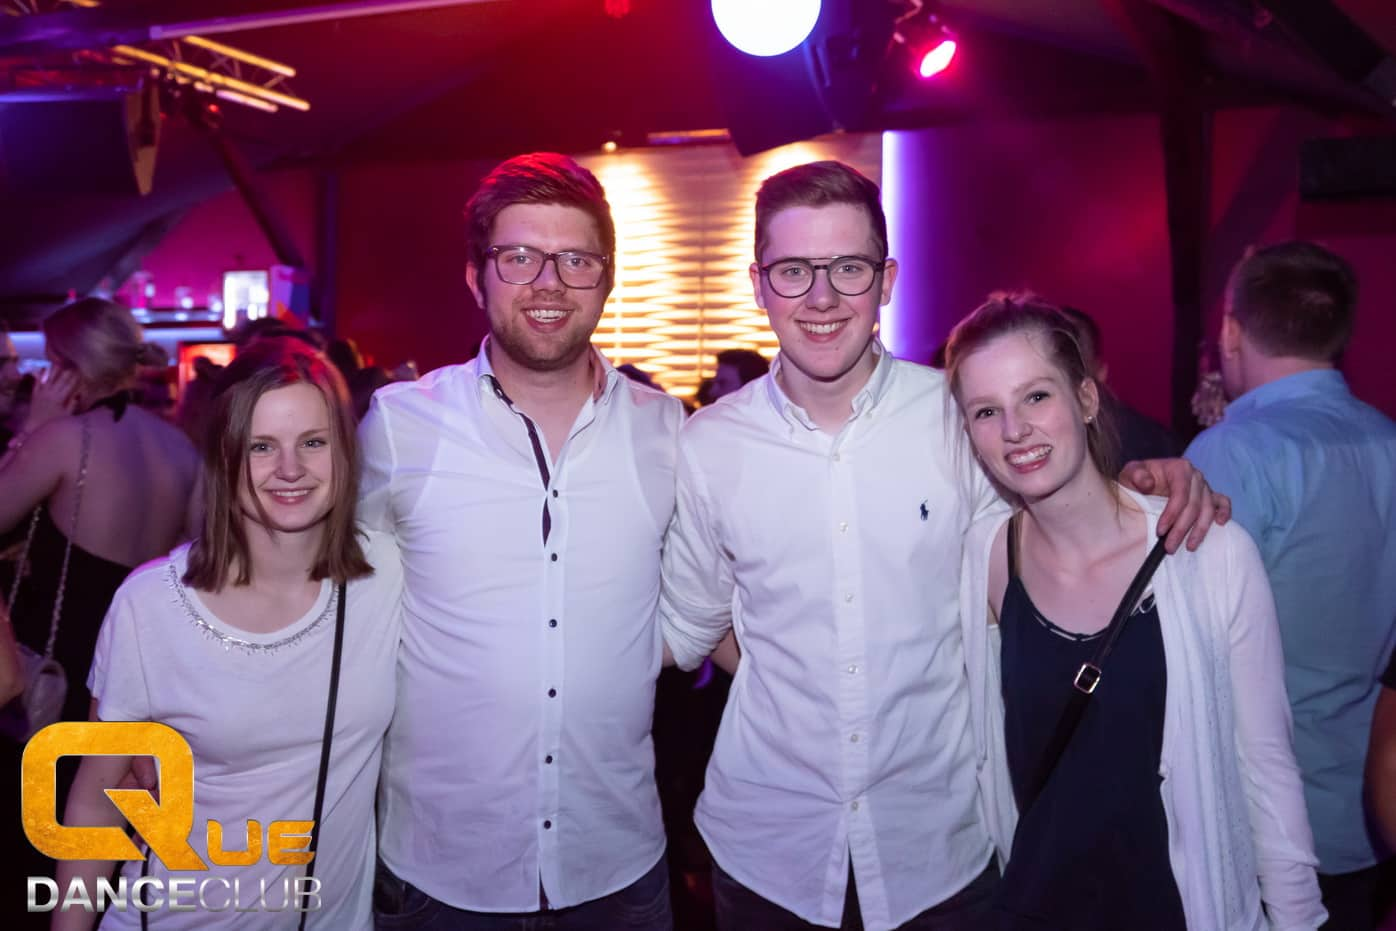 2018_12_25_Que_Danceclub_Engels_Nacht_2018_Nightlife_Scene_Timo_026